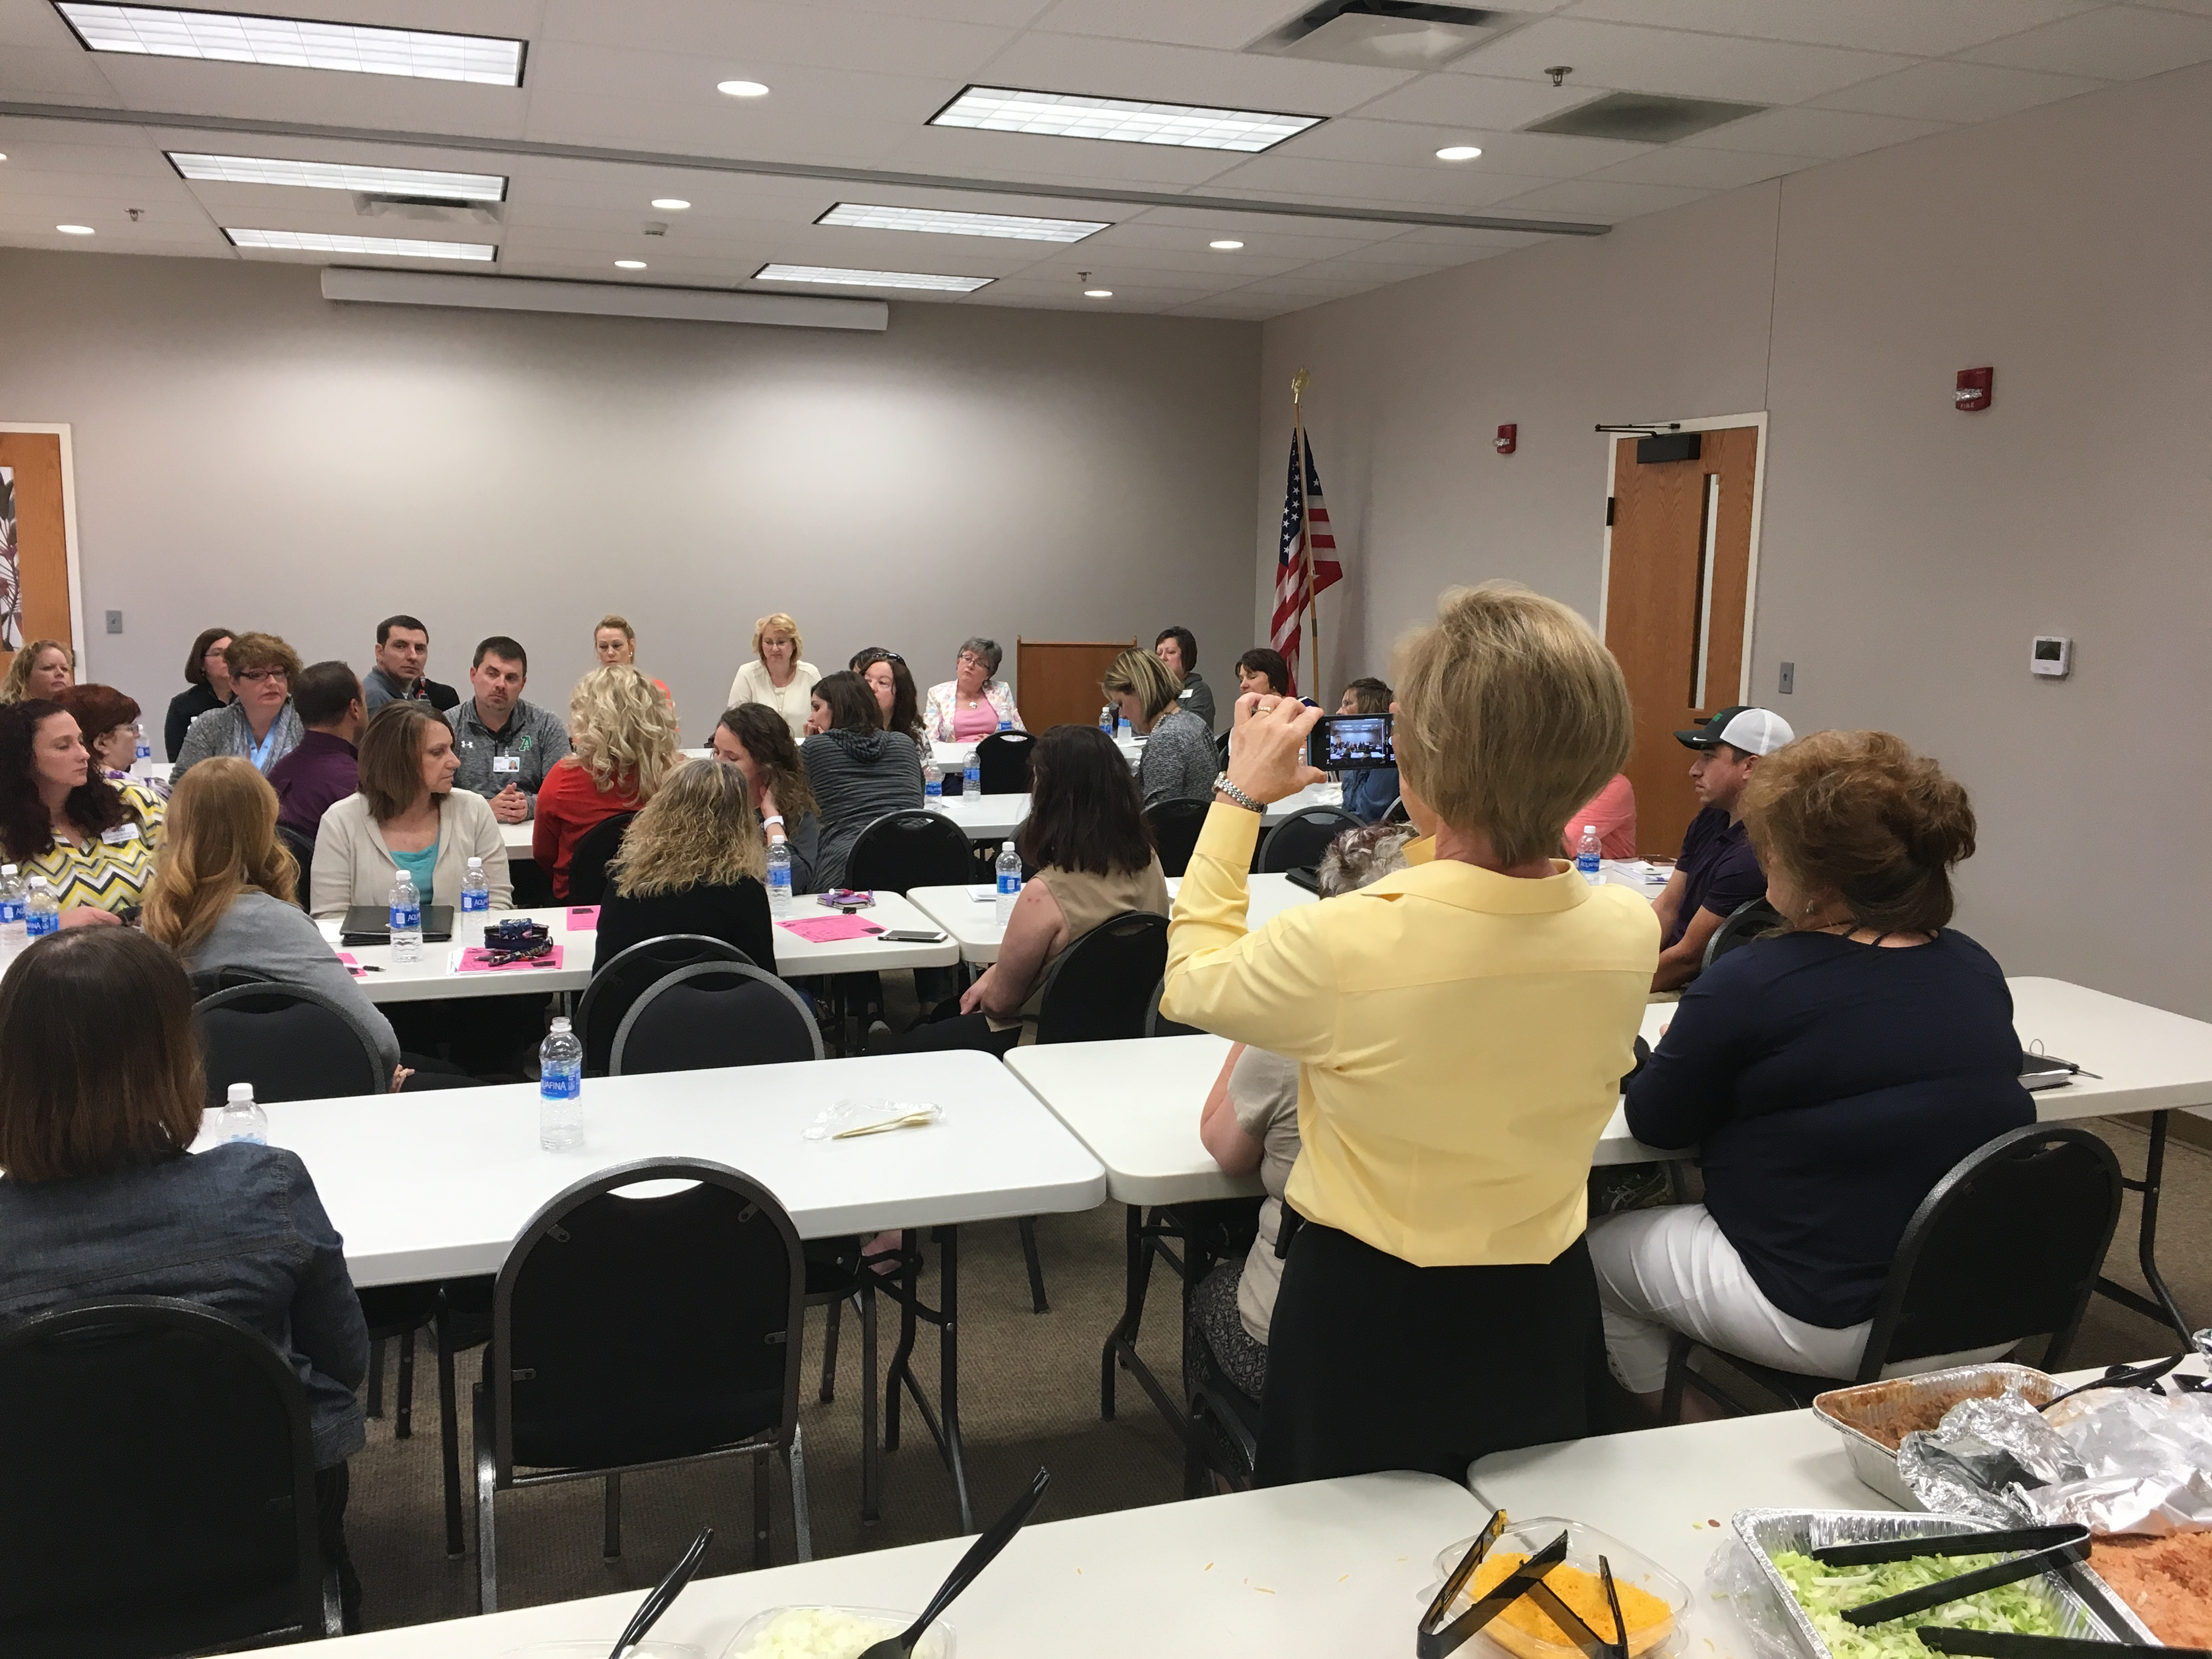 Another good turnout at our networking luncheon in Maryville. It was great to see you all!